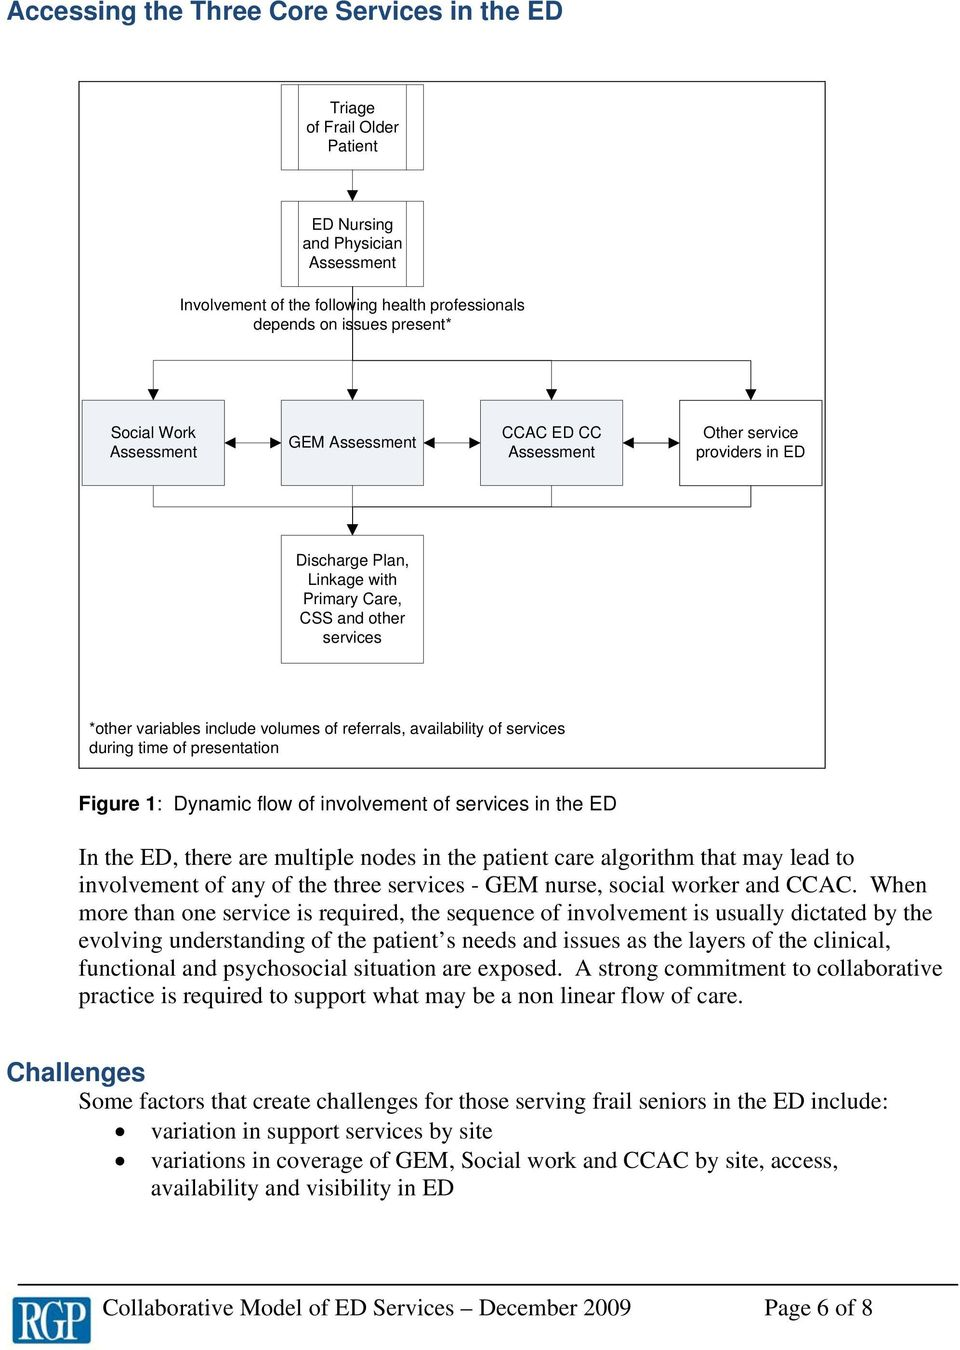 availability of services during time of presentation Figure 1: Dynamic flow of involvement of services in the ED In the ED, there are multiple nodes in the patient care algorithm that may lead to